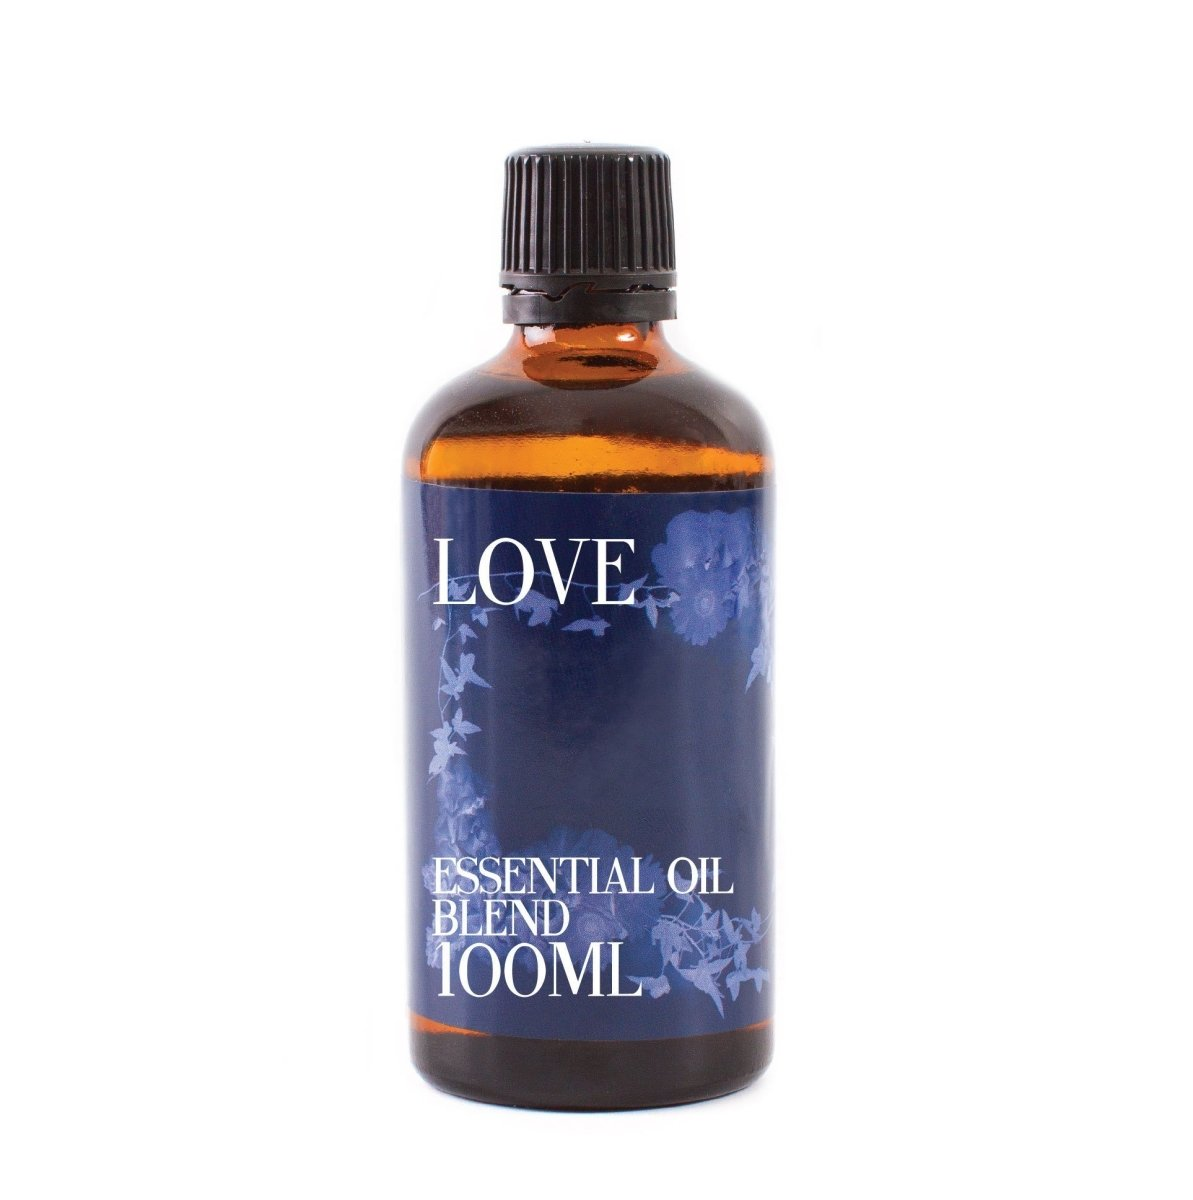 Love - Essential Oil Blends - Mystic Moments UK